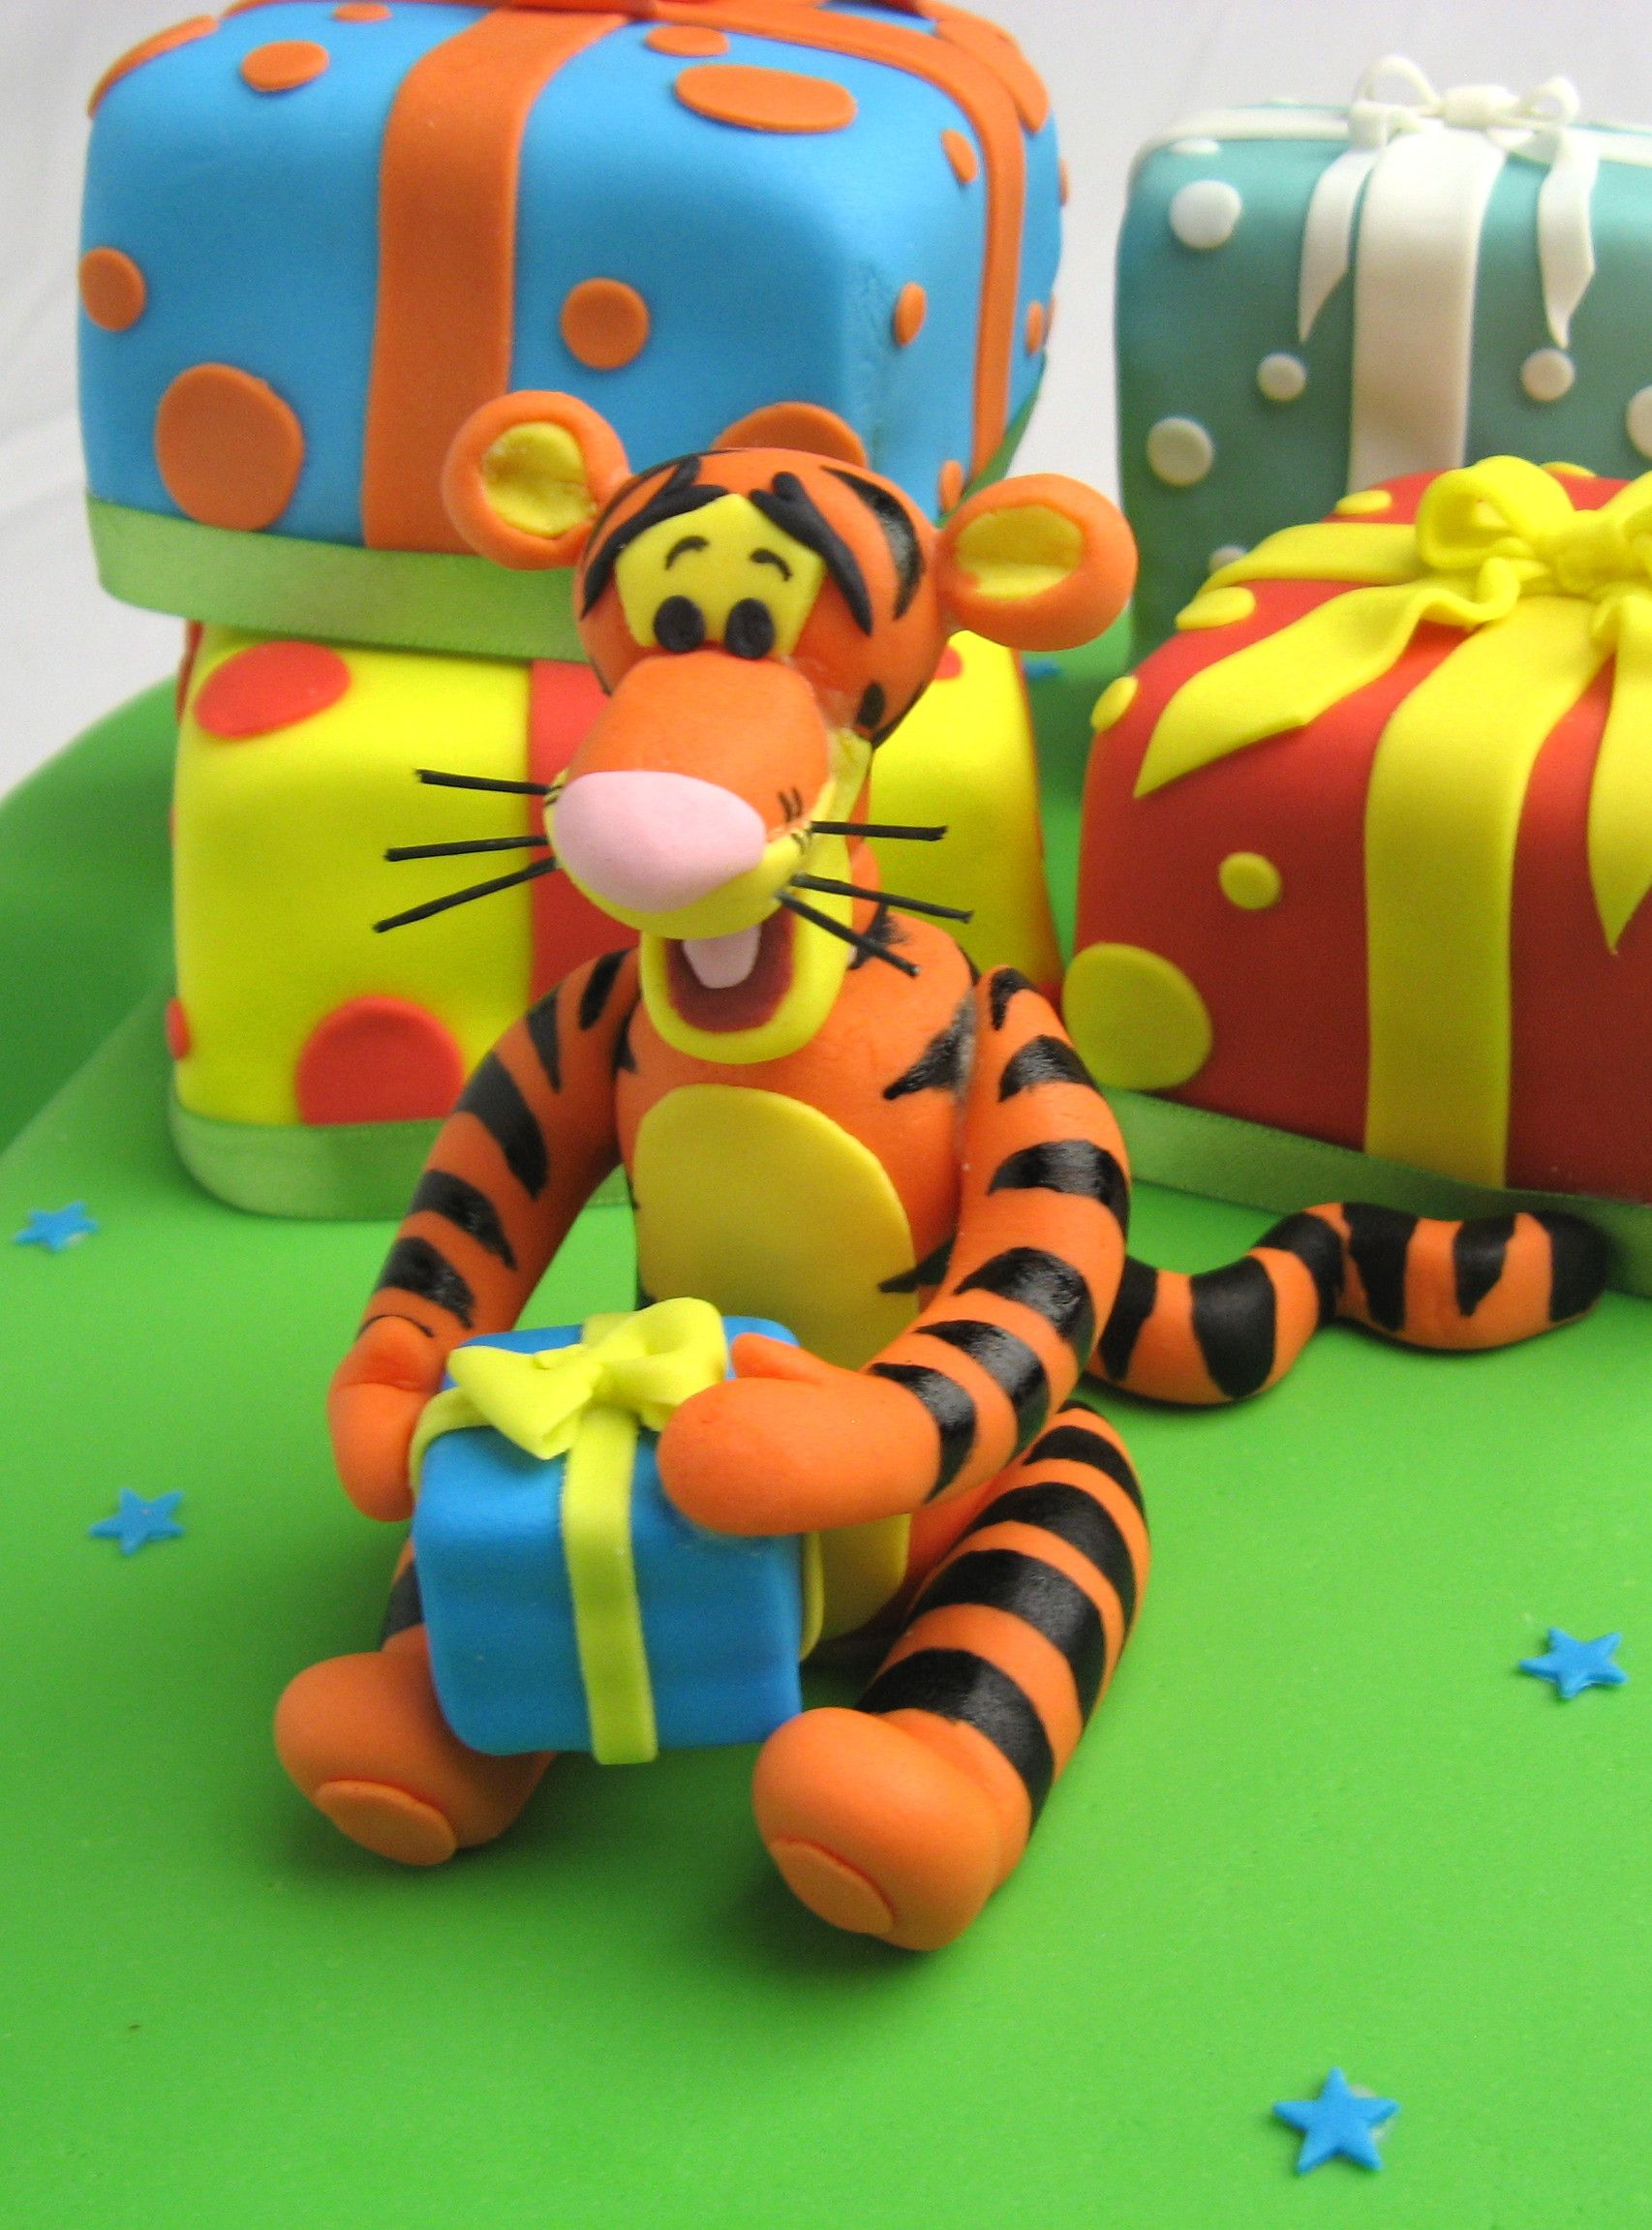 Tigger With Present Sugar Cake Topper From Winnie The Pooh Made By Carrys Toppers